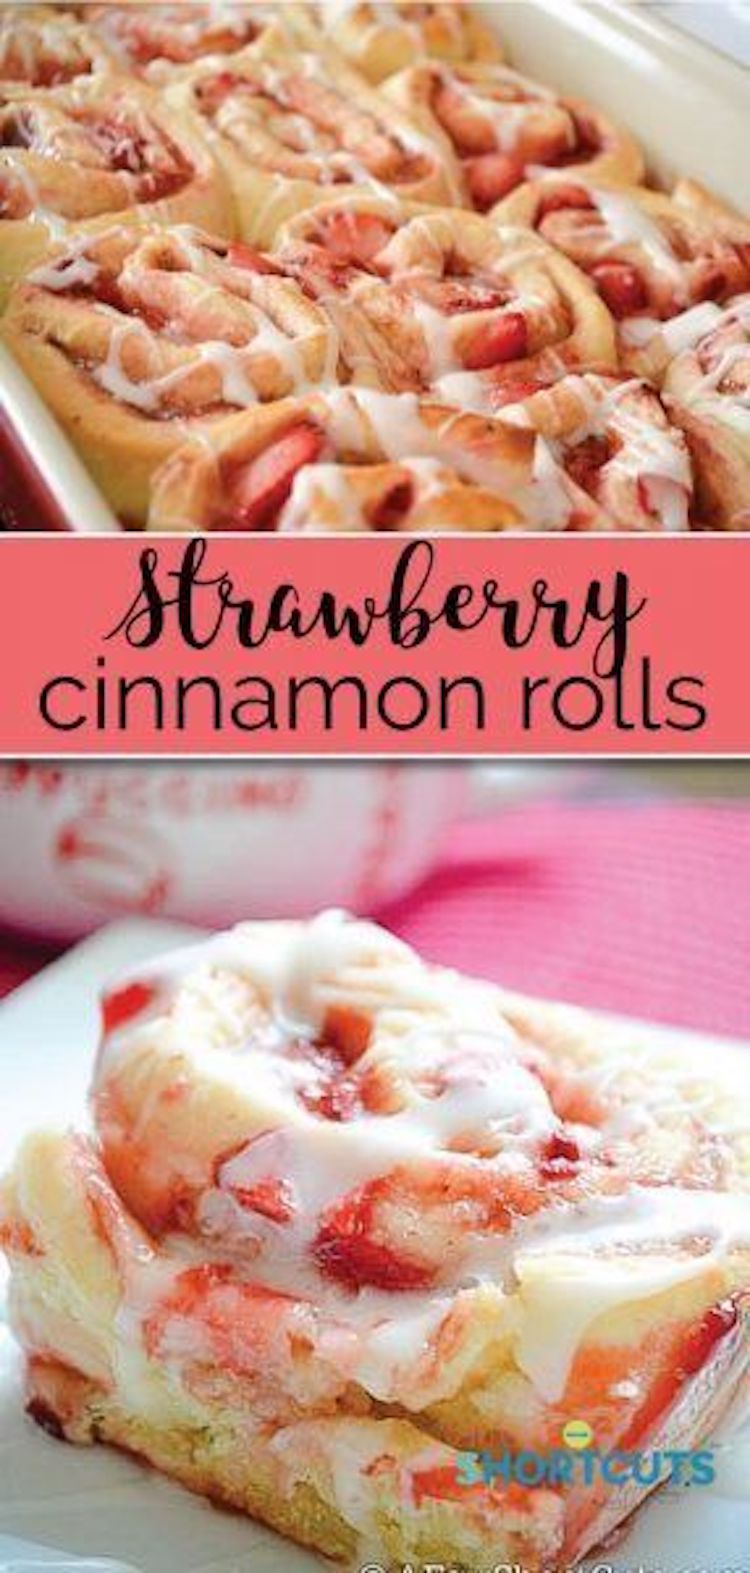 38 Cinnamon Roll Dessert Recipes: Cinnamon rolls are the best to eat for breakfast, lunch, dinner, dessert, and everything in between. Check out these cinnamon roll dessert recipes!